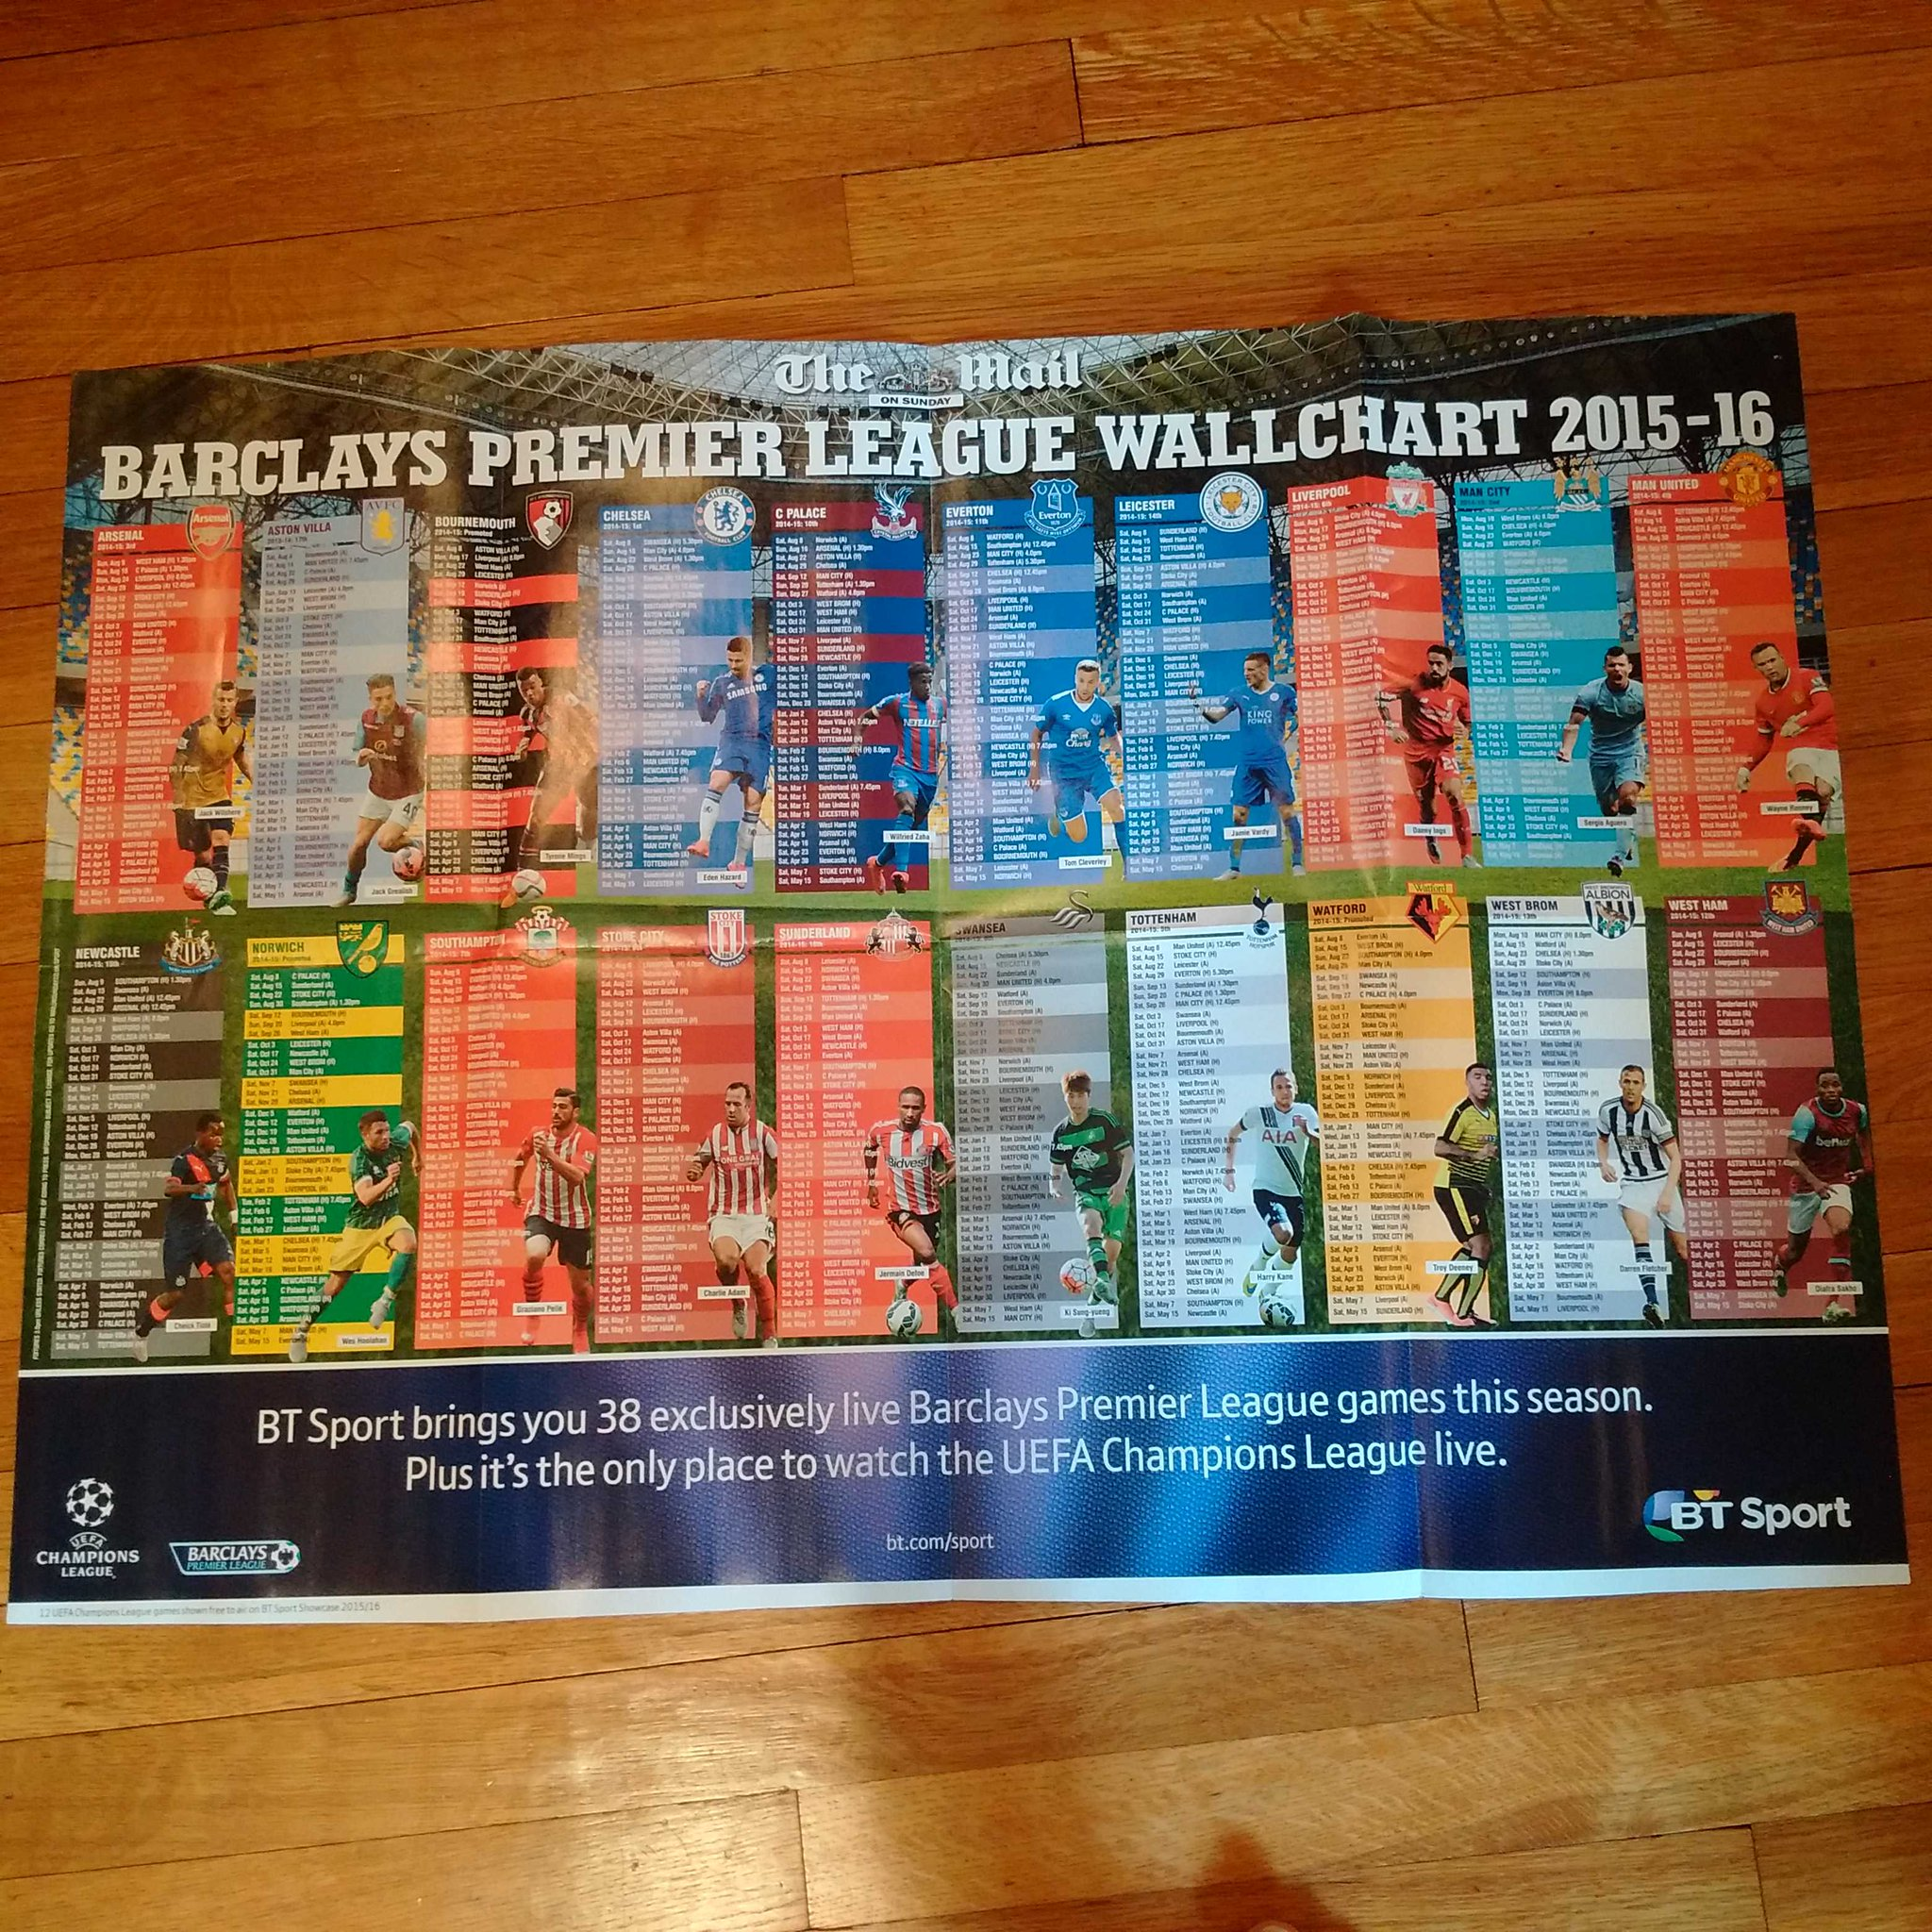 The Mail on Sunday is giving away this fantastic Premier League wallchart with tomorrow's paper. Don't miss it! http://t.co/PUm9Y2K4XP